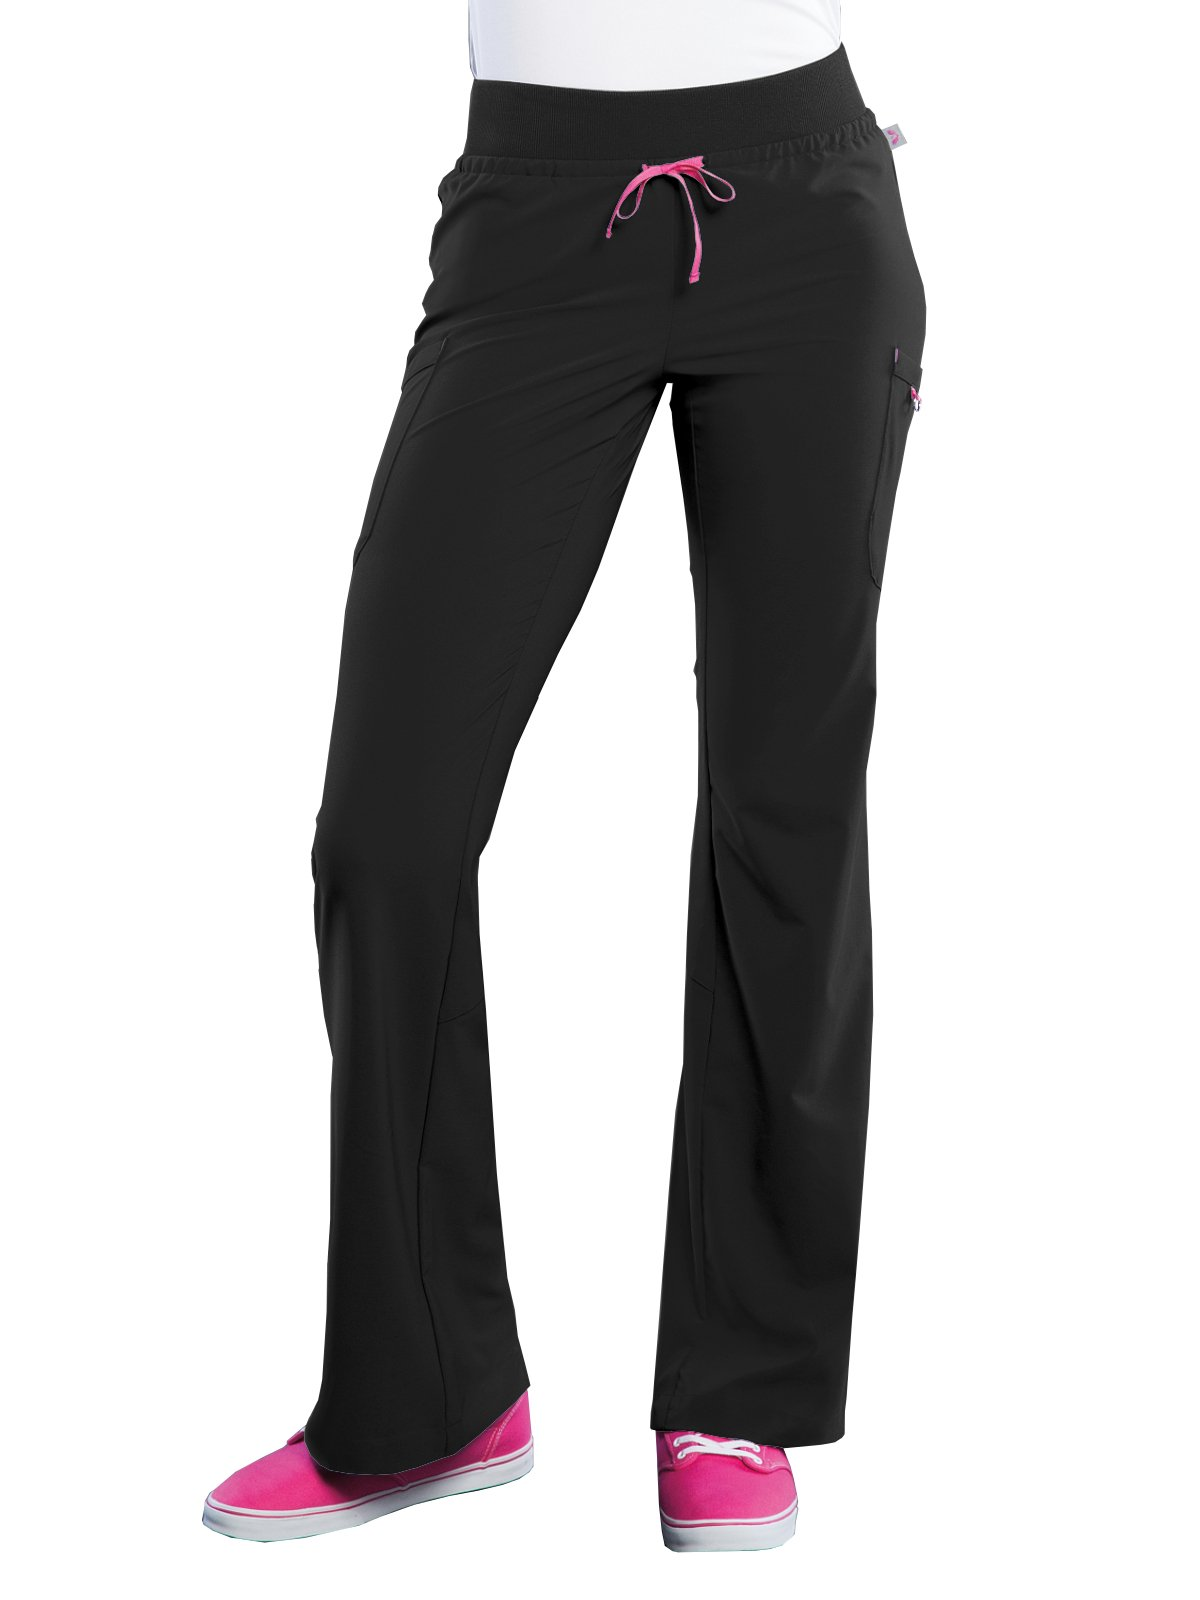 Smitten Miracle S201019 Legendary Yoga Pant Black S Tall